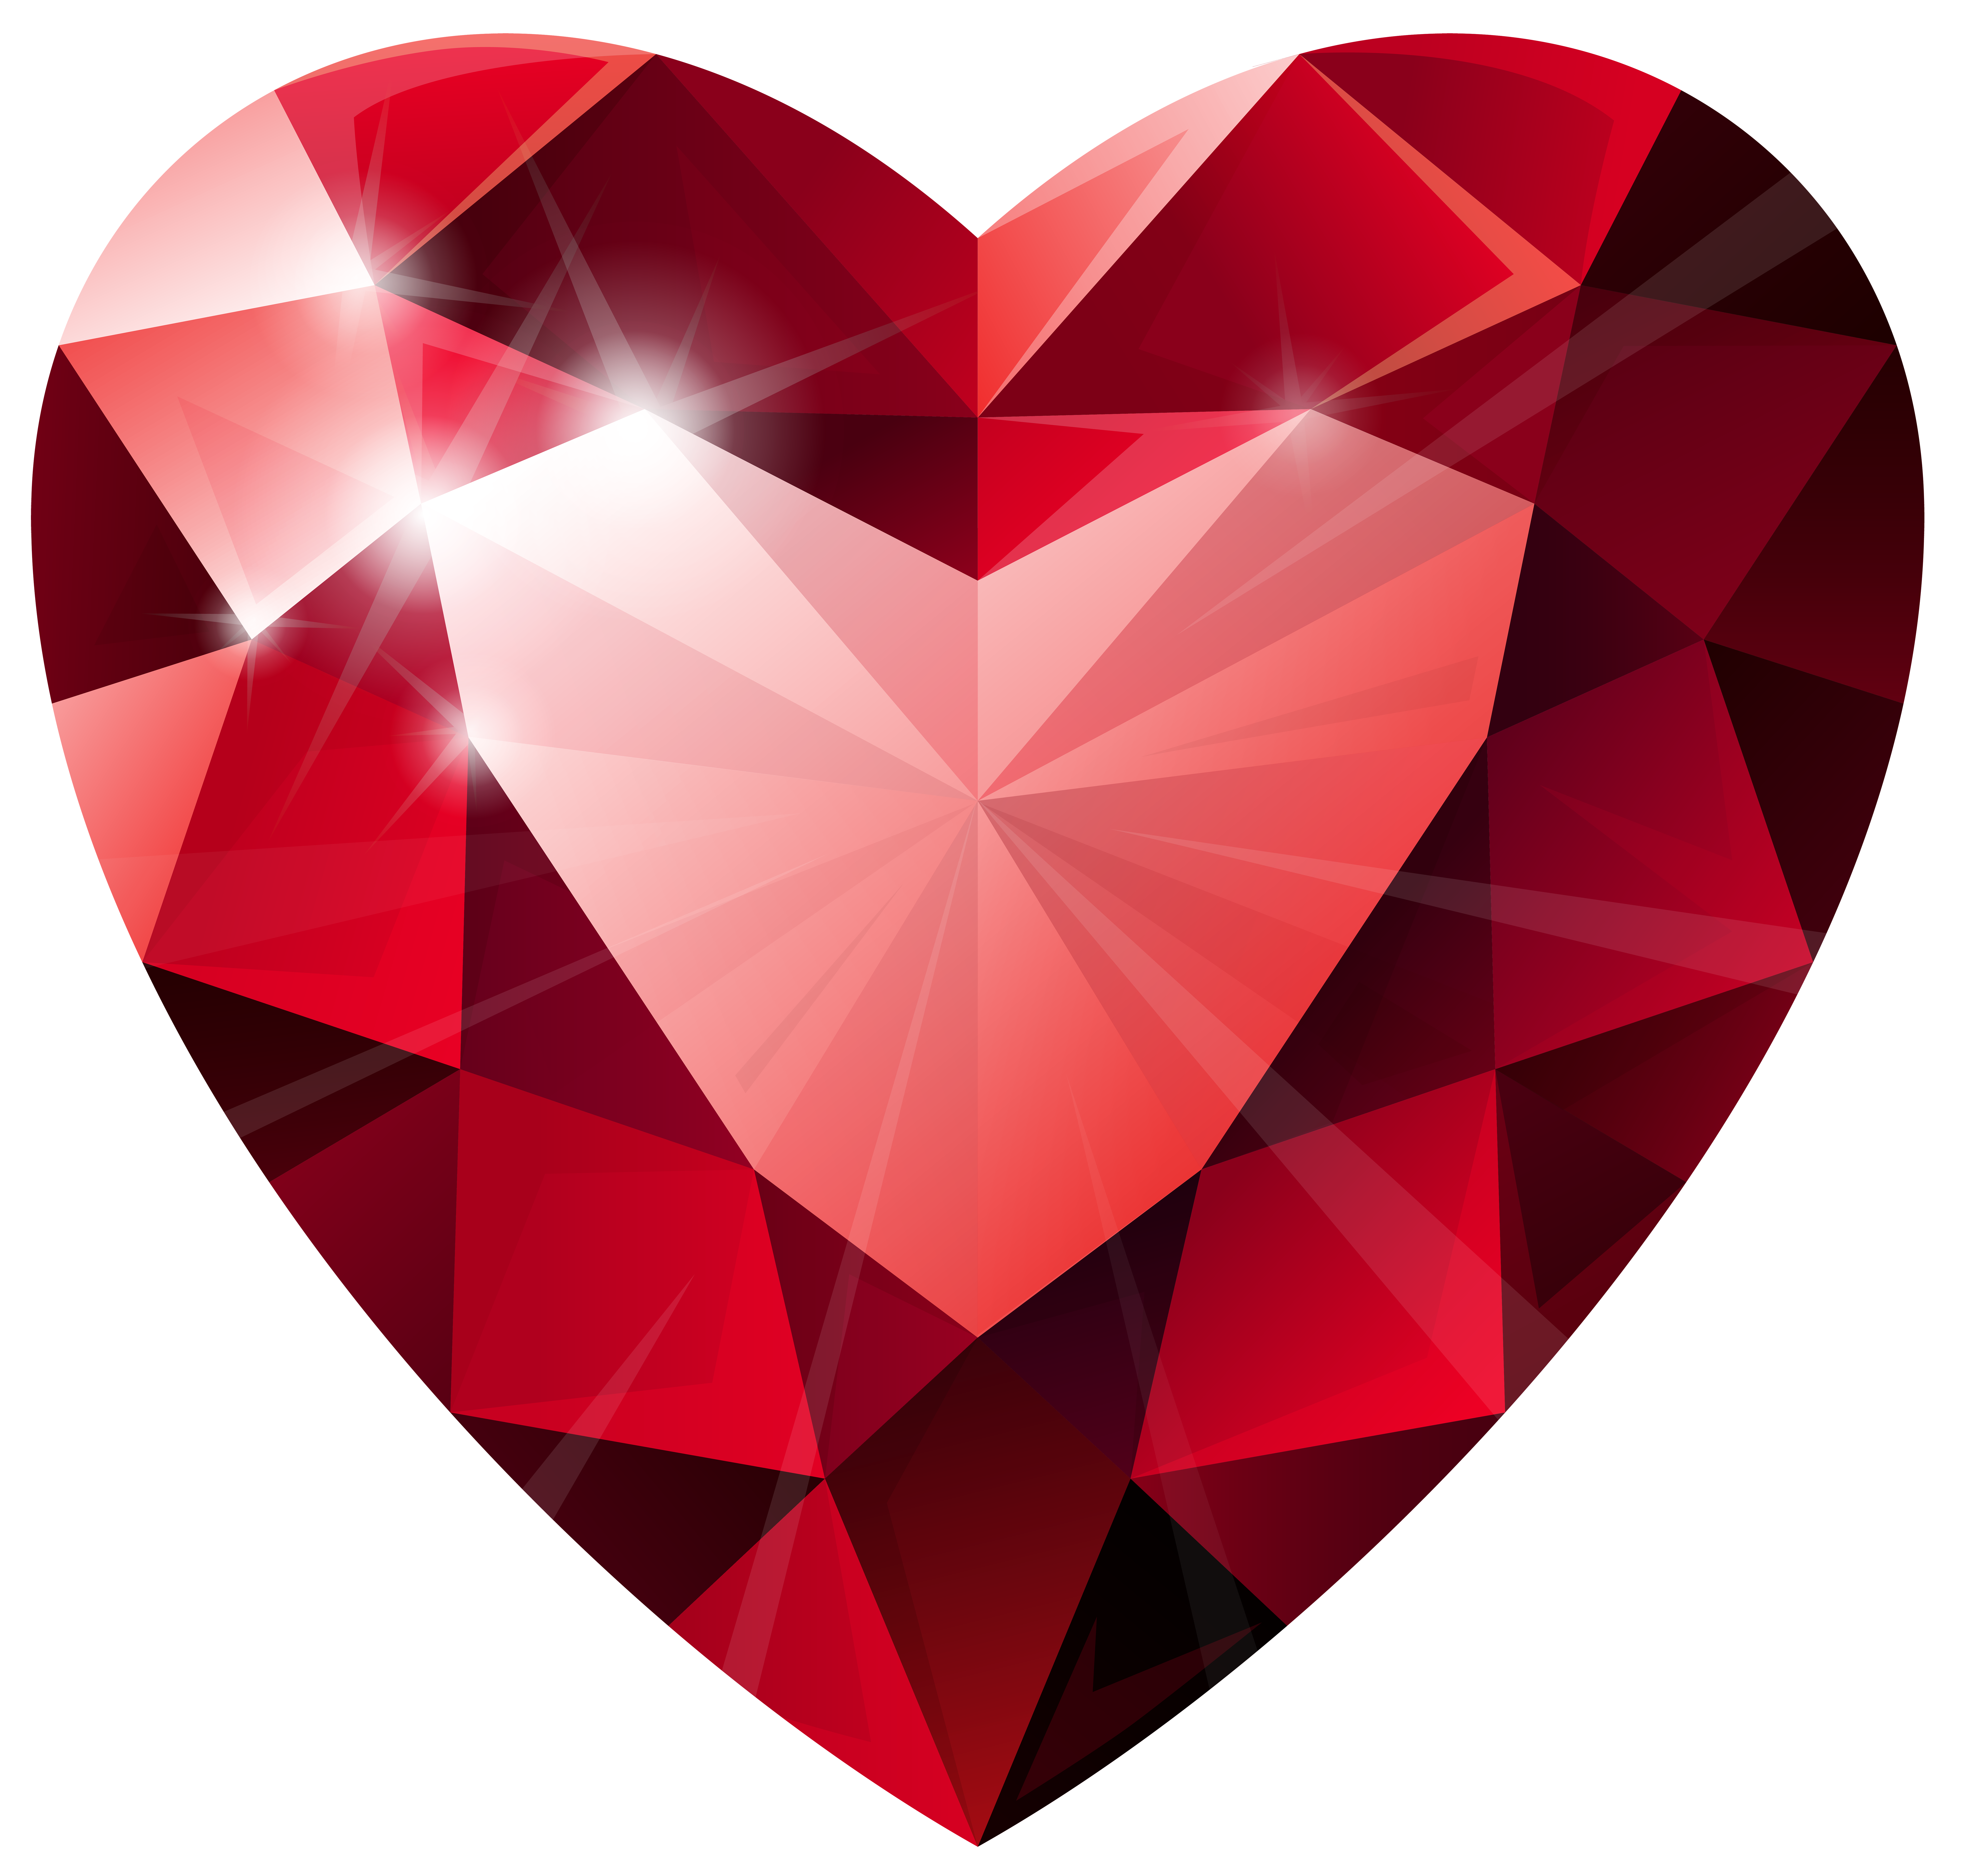 Clipart rock diamond. Heart transparent png clip